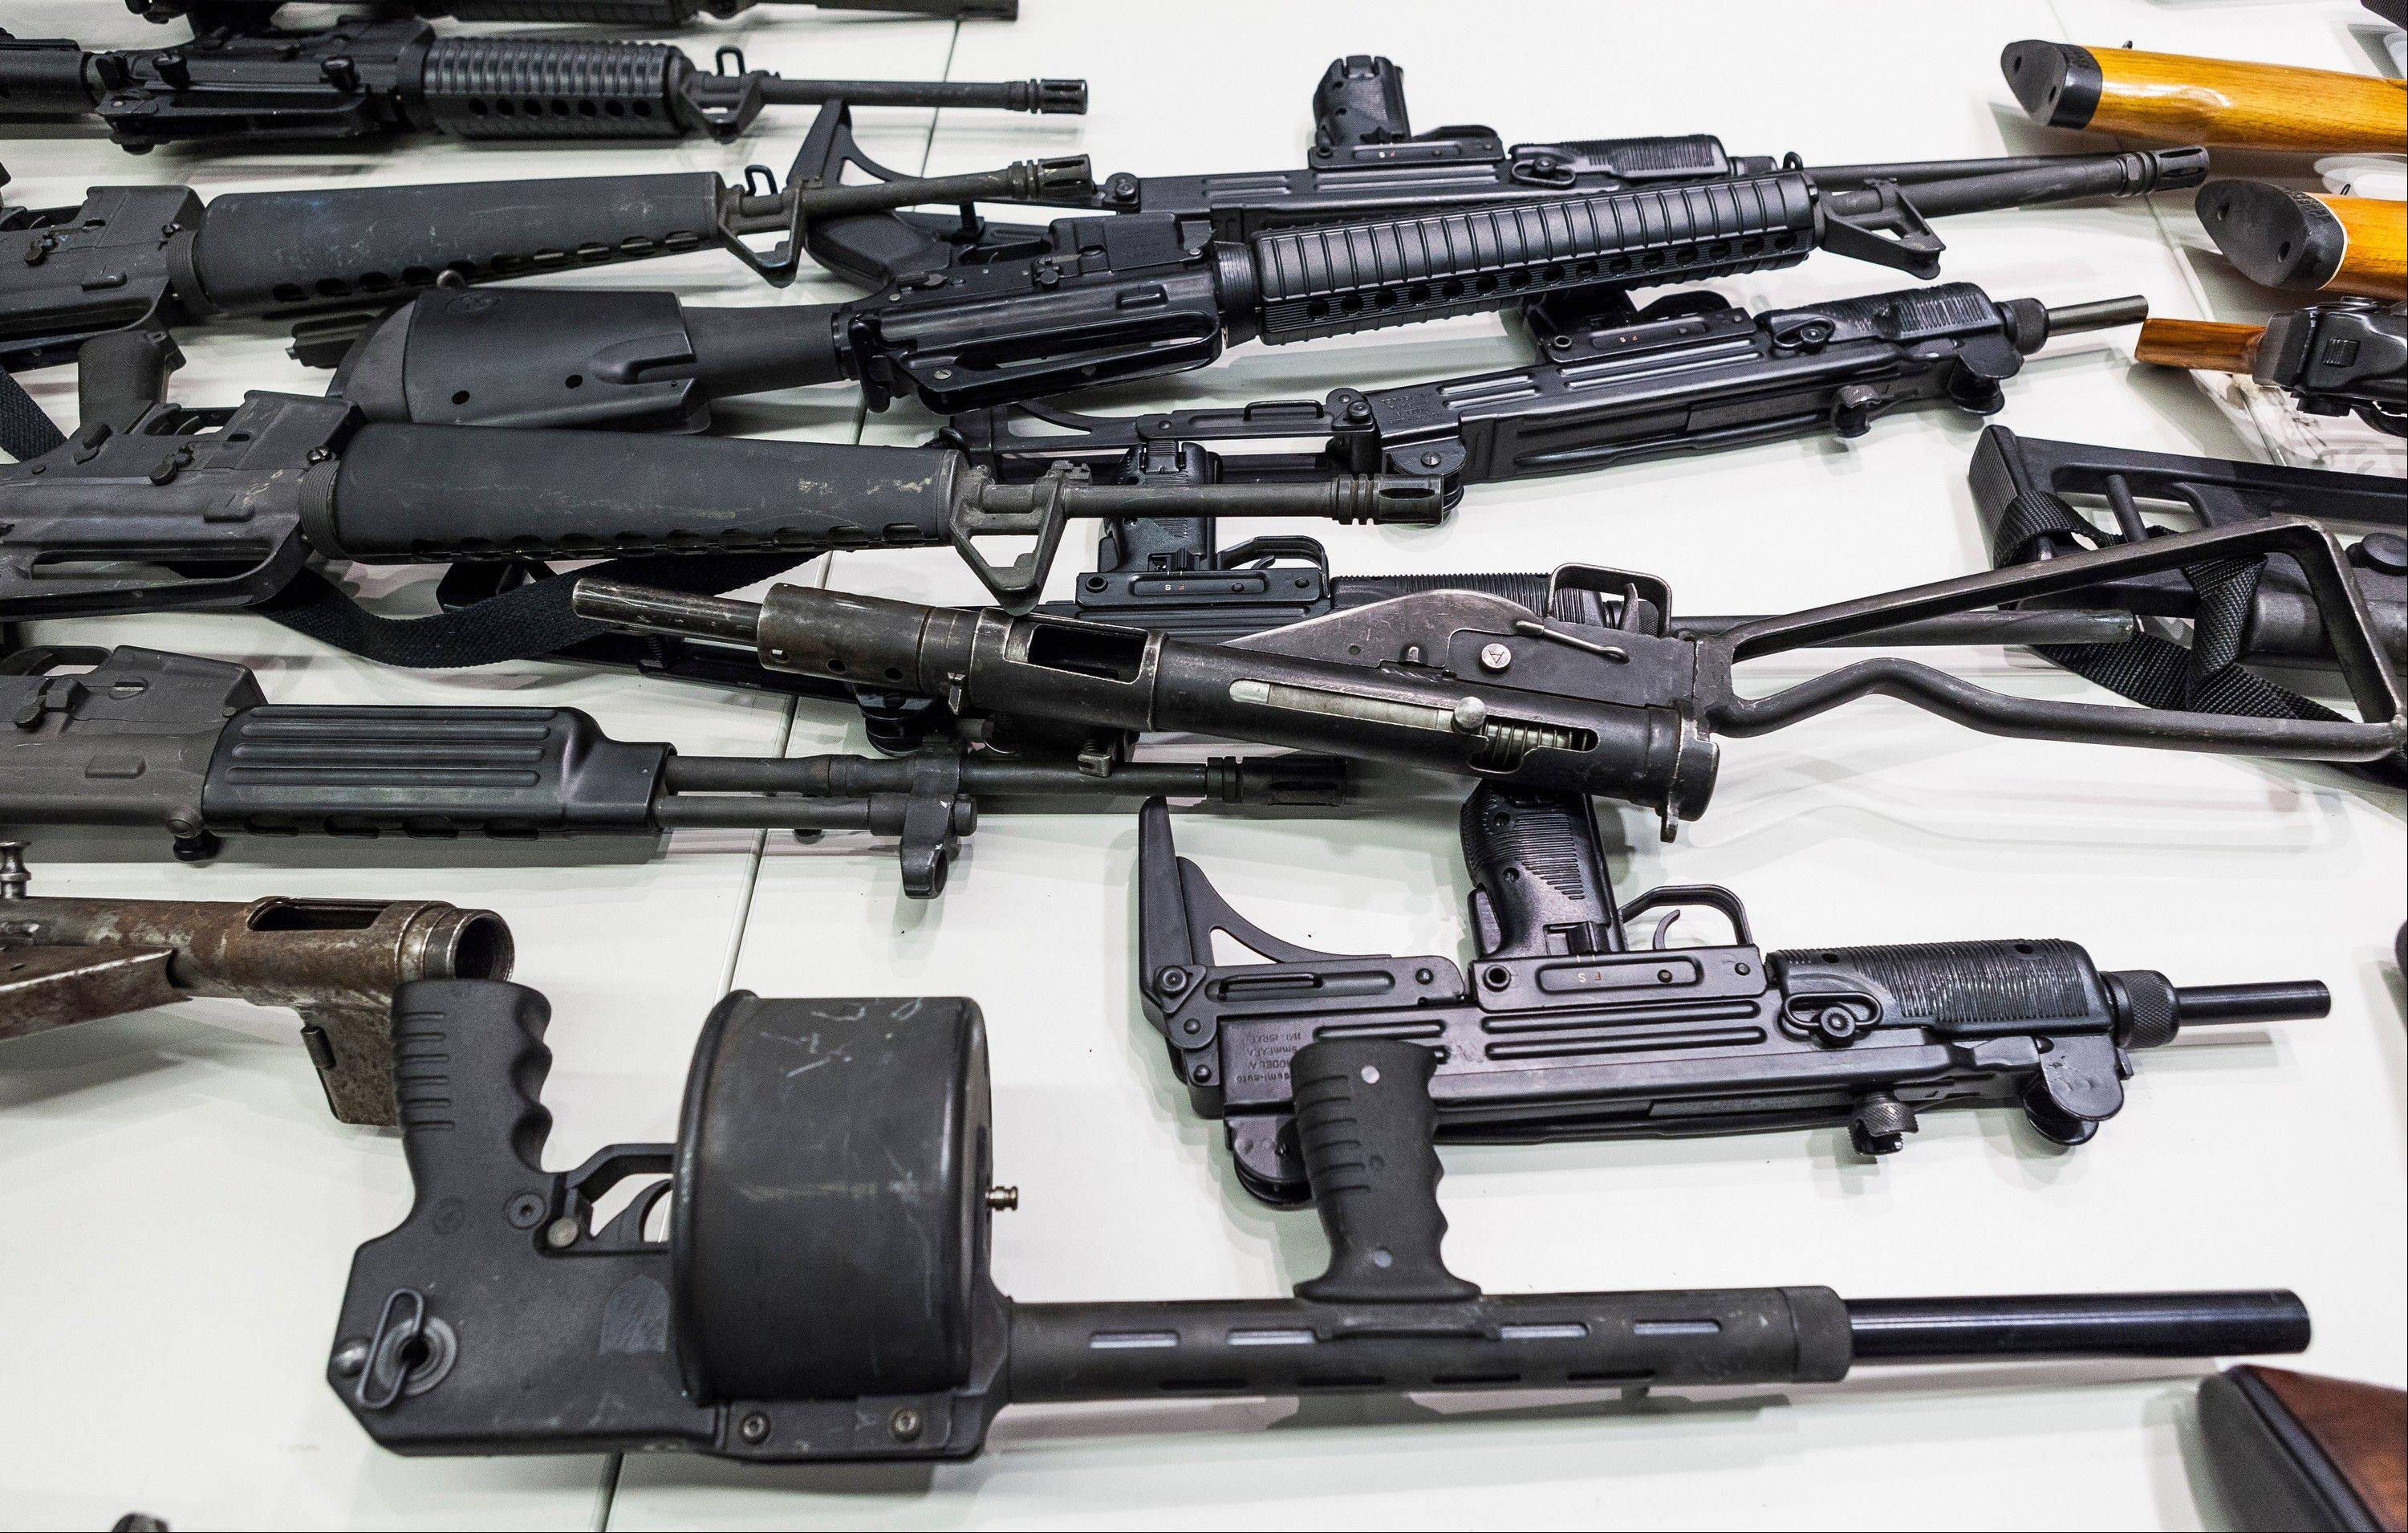 Suburban municipalities with populations of 25,000 or more have the authority under new state legislation to ban assault weapons -- but only if they opt to do so by Friday.